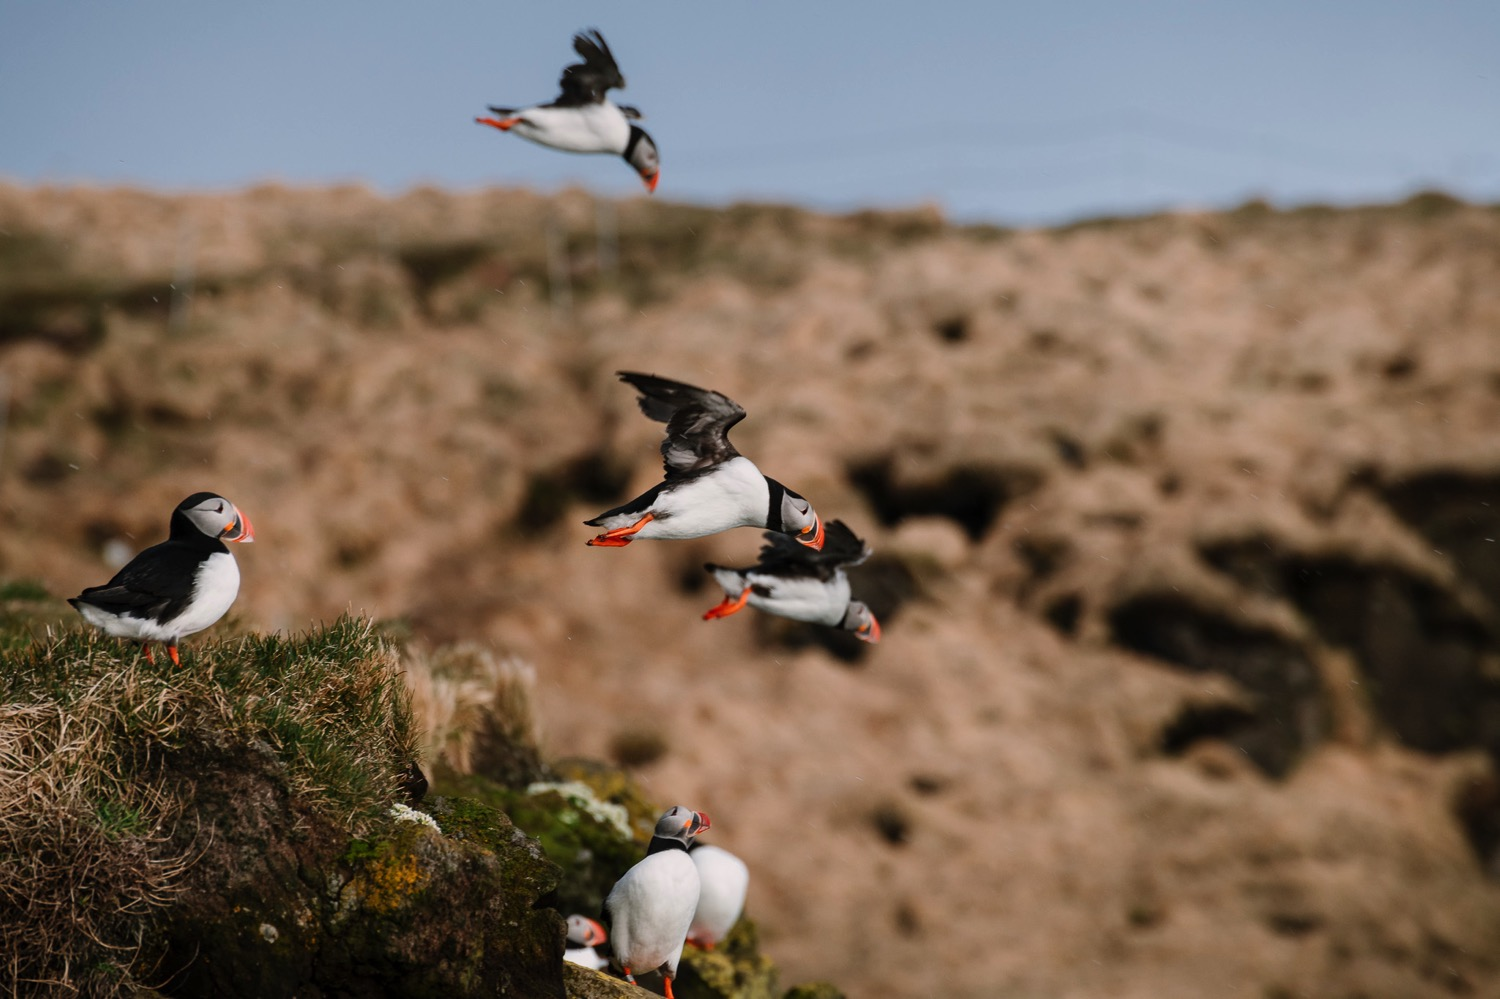 Puffins in flight - Iceland Blog Part II